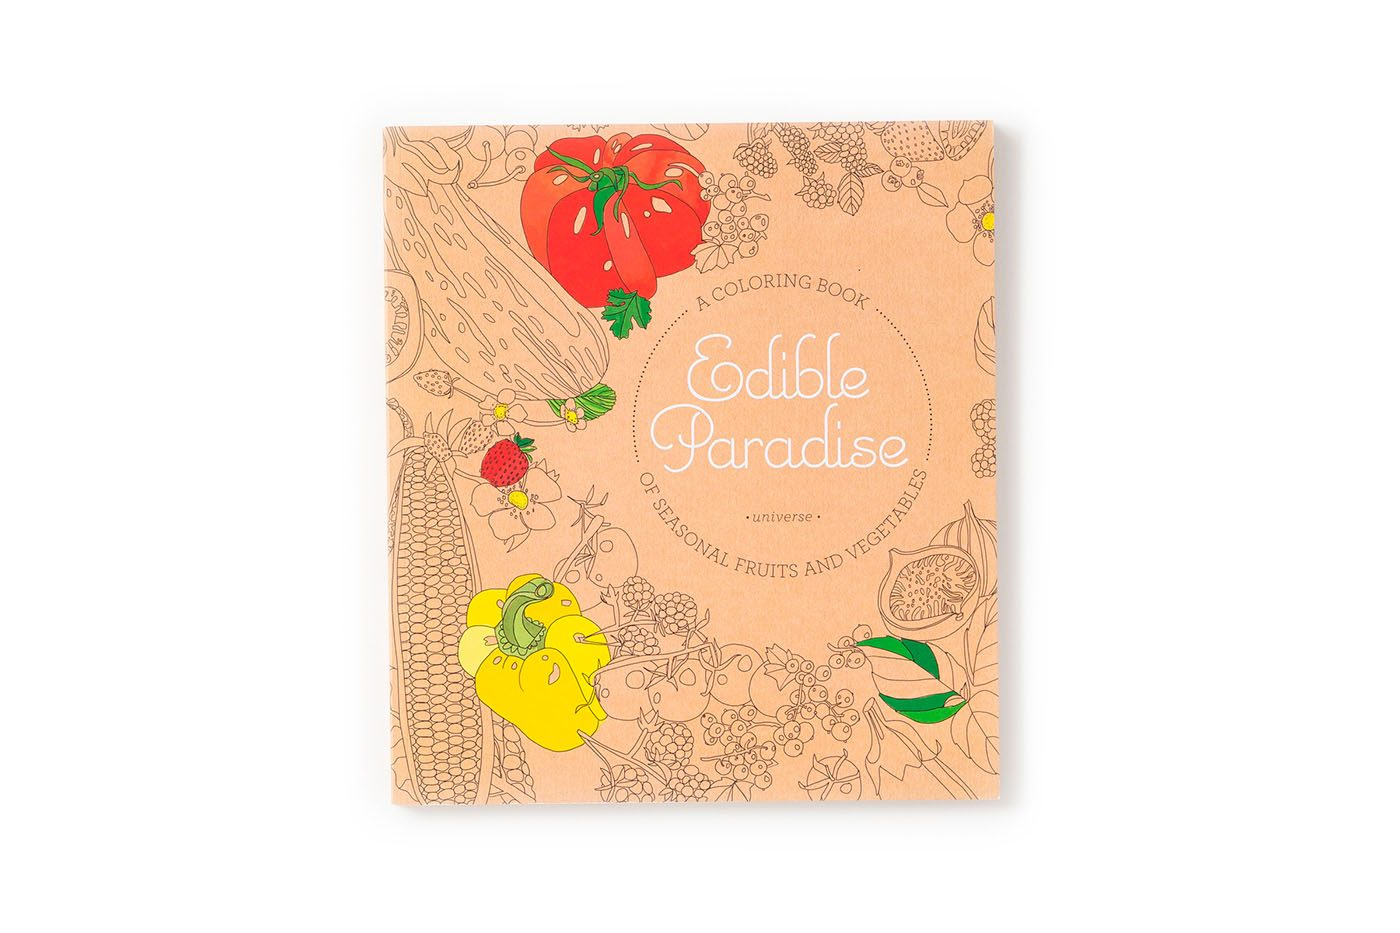 Edible Paradise: A Coloring Book of Seasonal Fruits and Vegetables (Rizzoli)